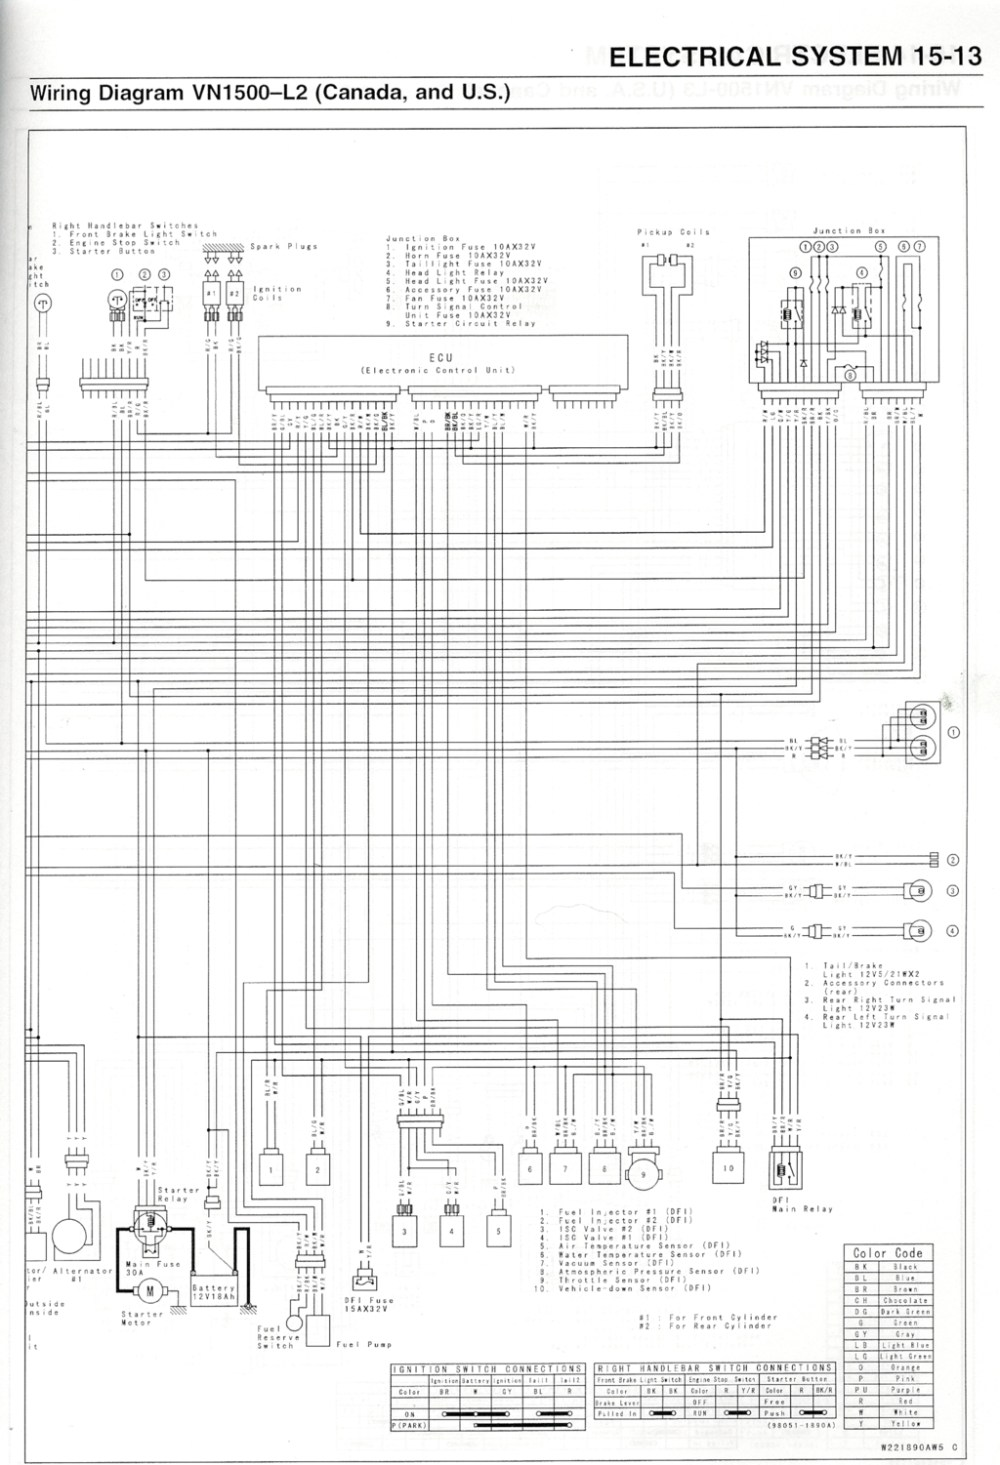 medium resolution of vulcan wiring diagrams gadget s fixit page rh gadgetsfixitpage com 1999 kawasaki vulcan 1500 wiring diagram